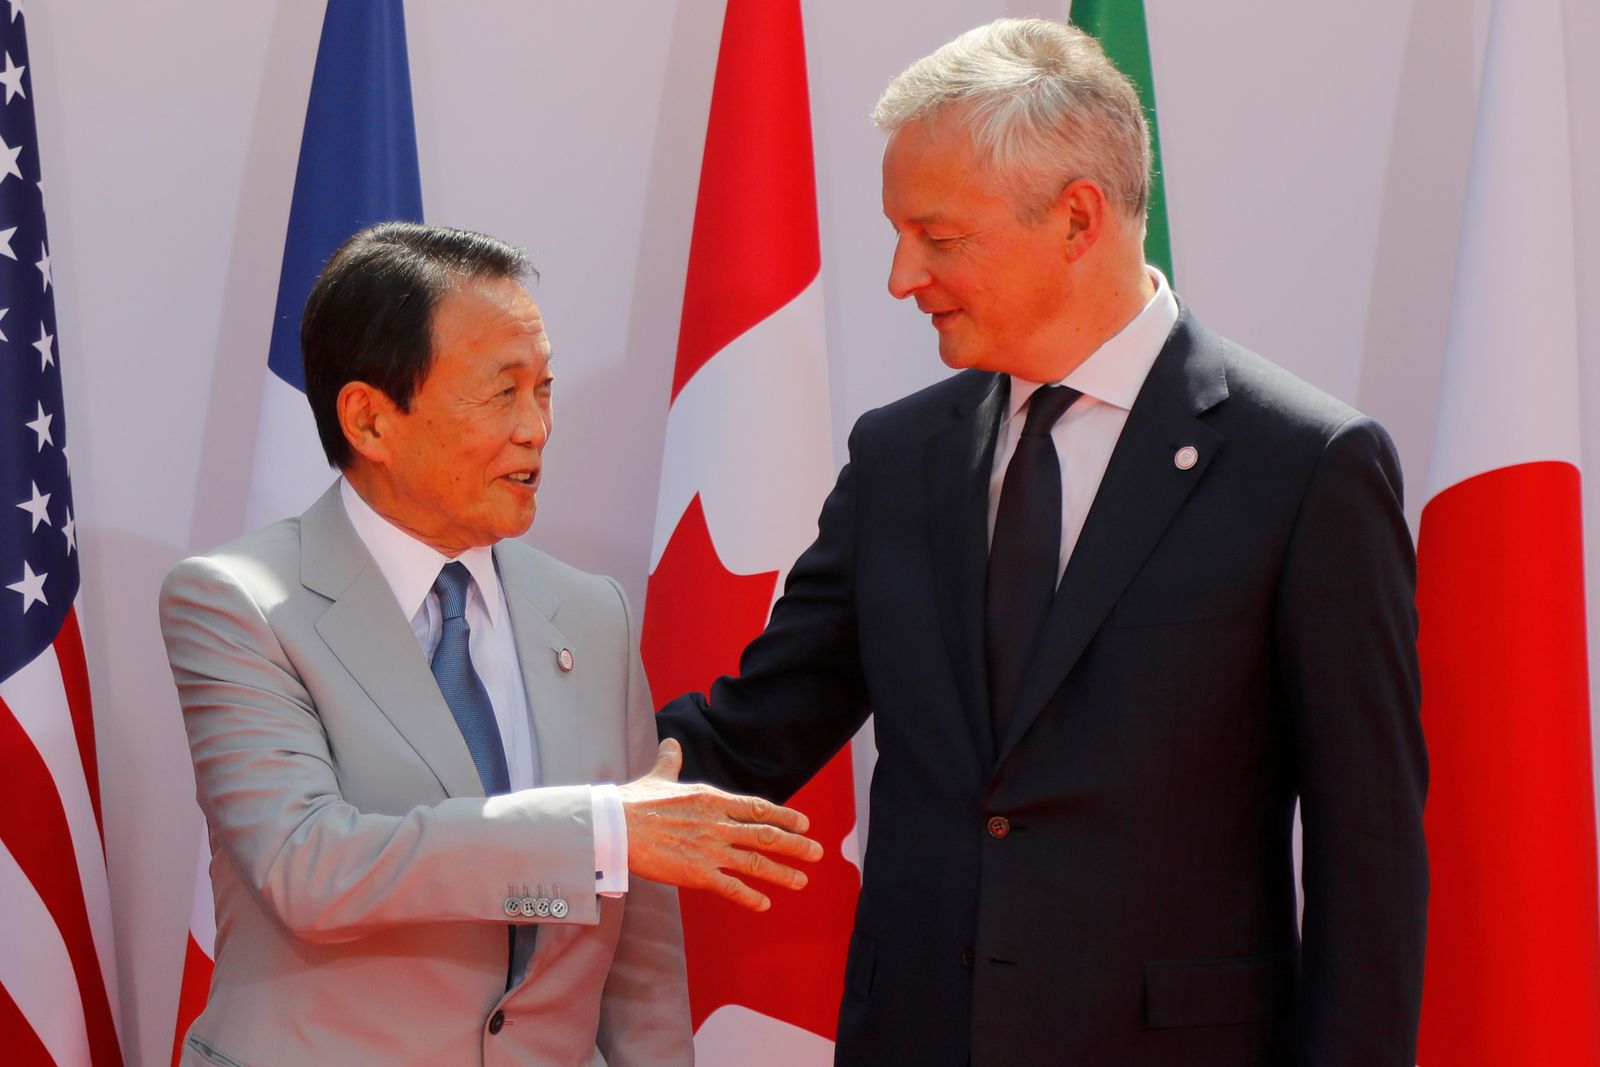 French Finance Minister Bruno Le Maire, right, welcomes Japan's Finance Minister Taro Aso at the G-7 Finance Wednesday July 17, 2019. (AP Photo/Michel Euler)